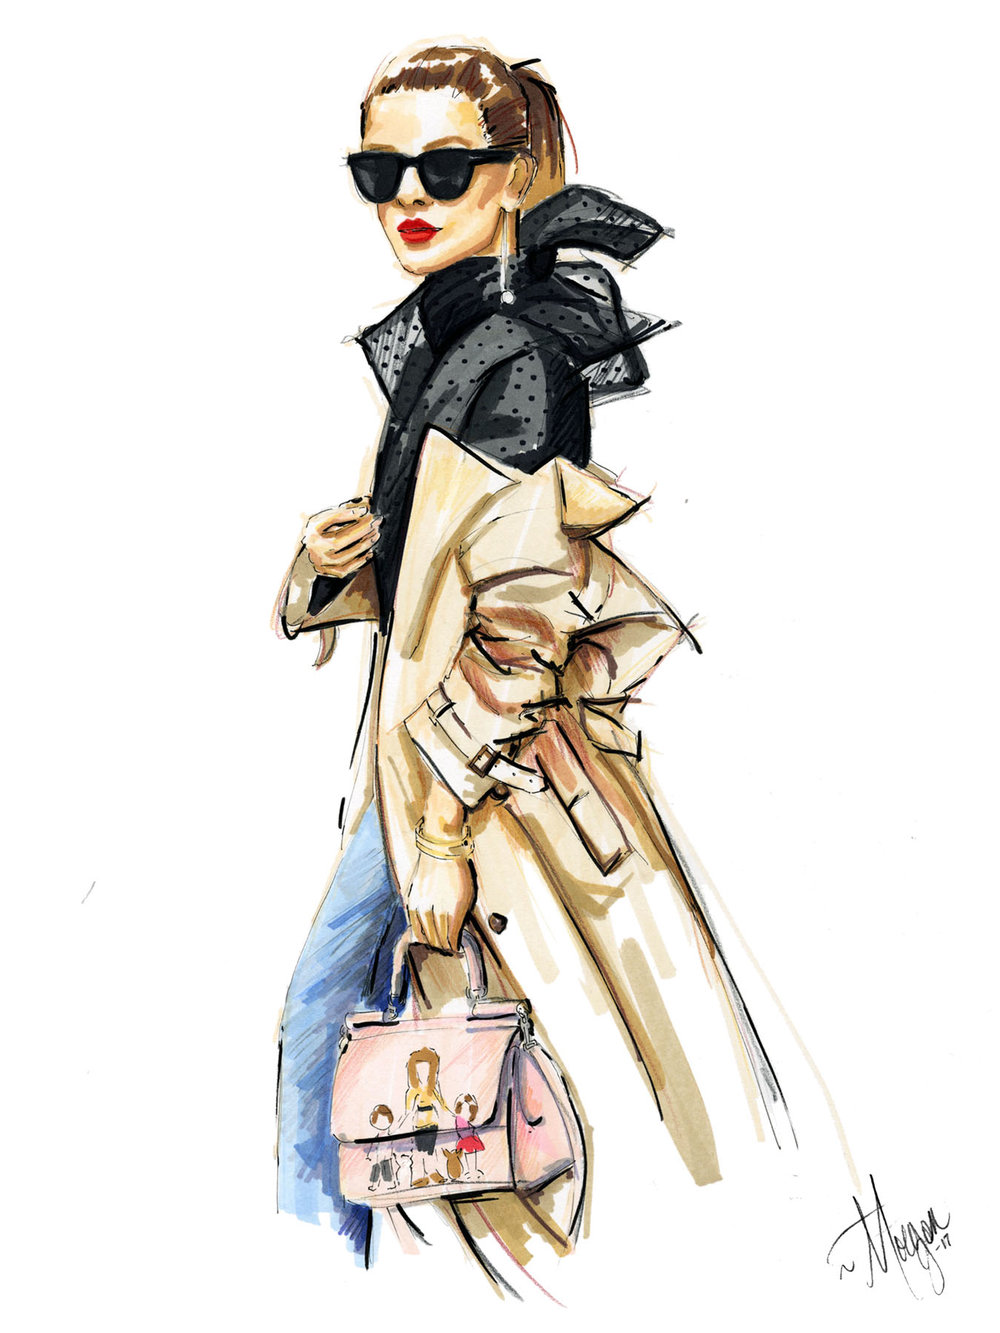 trench-coat-illustration-morgan-swank-studio.jpg